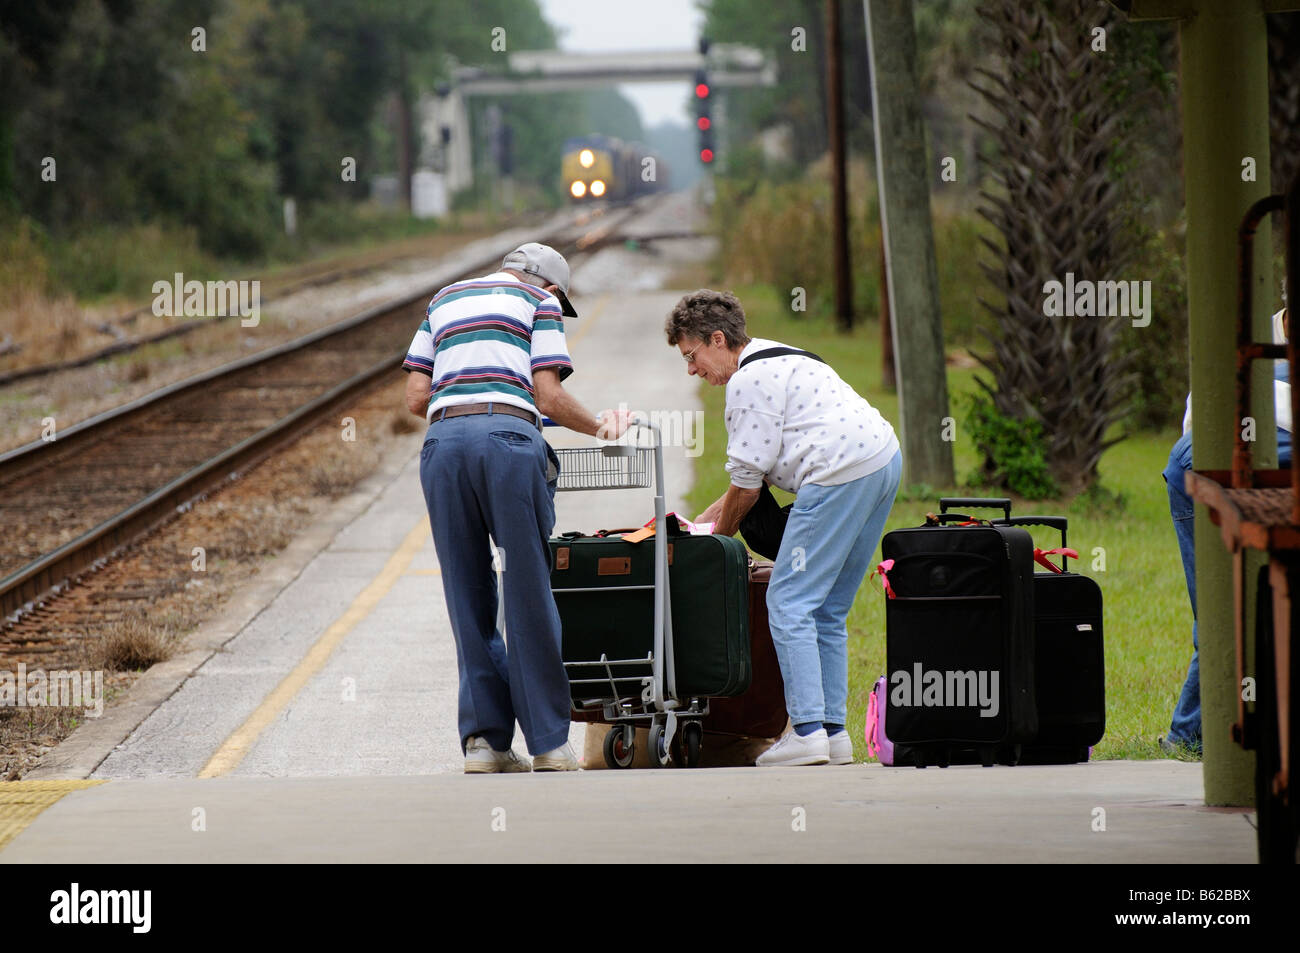 Railroad passengers with luggage trolley and bagage on railroad station platform in Florida USA - Stock Image